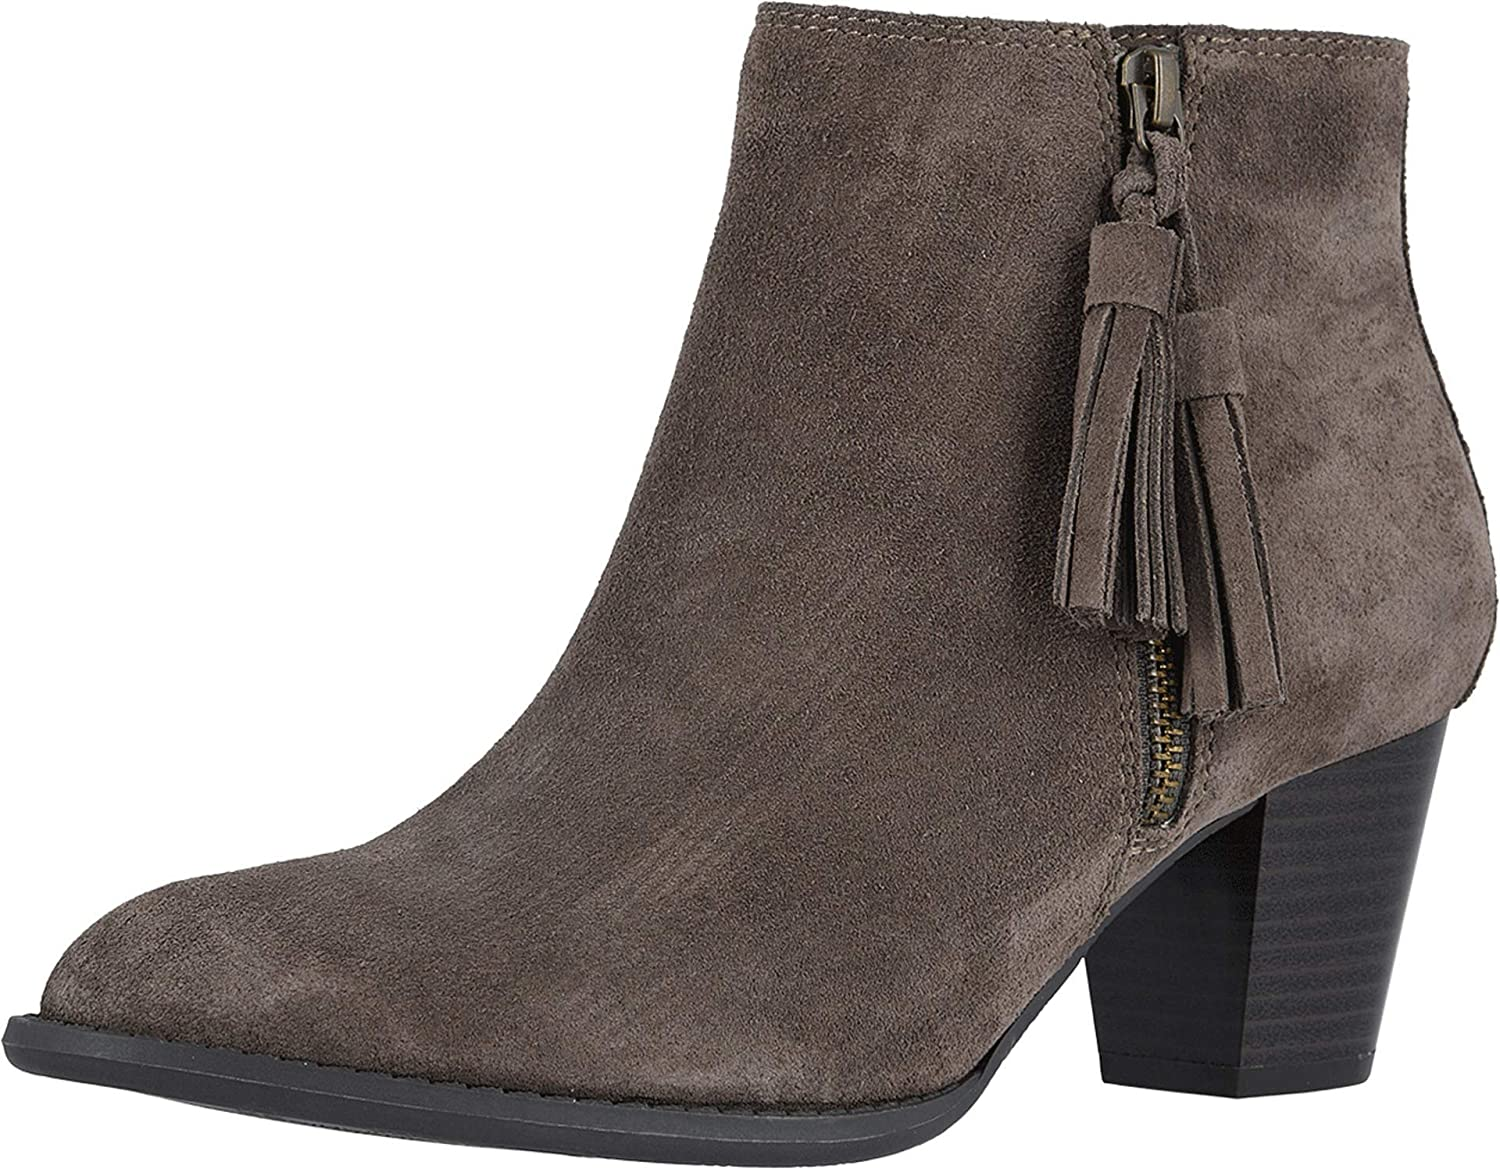 Vionic Women's Upright Madeline Ankle Boot Award with Booties - Max 89% OFF Ladies